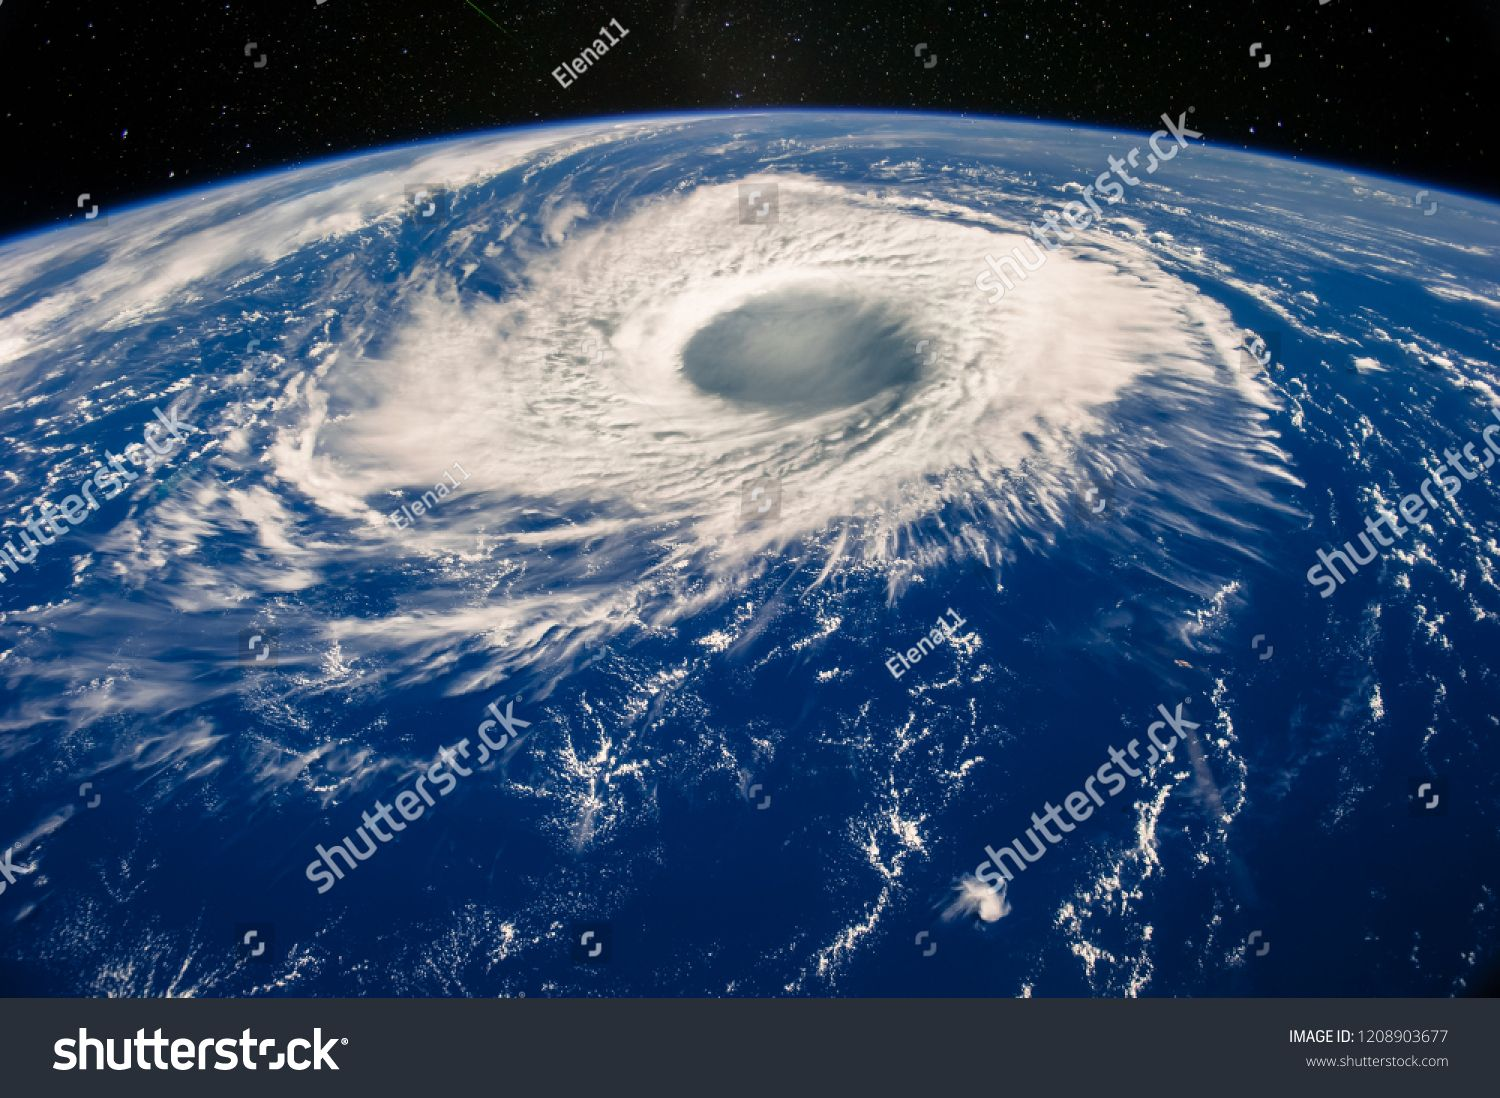 Hurricane Eye On Earth Viewed From Space Satellite View Elements Of This Image Furnished By Nasa Typhoon Nab Climate Change Earth View Earth View From Space